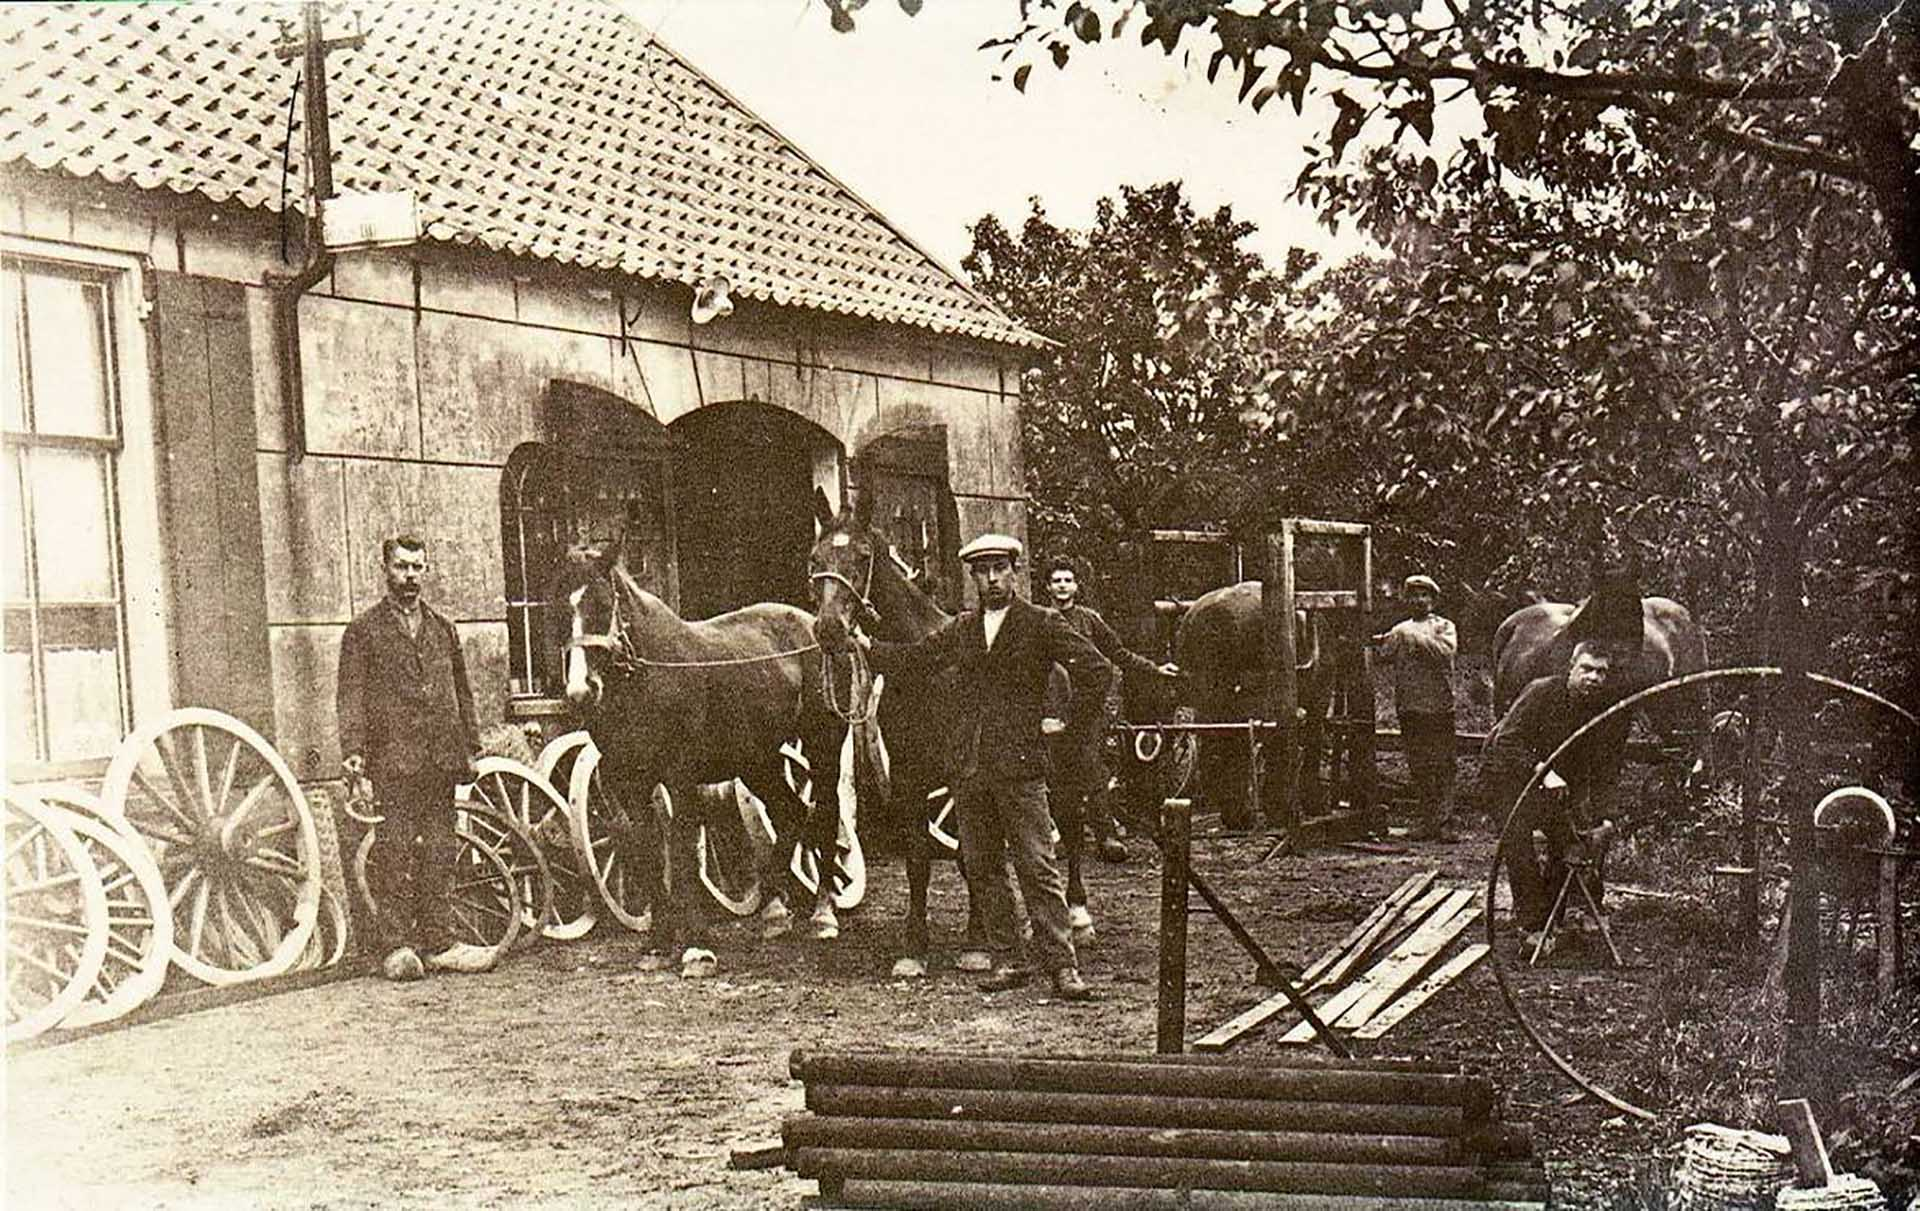 Origin story of MHB the company in 1920 at the residence and workshop